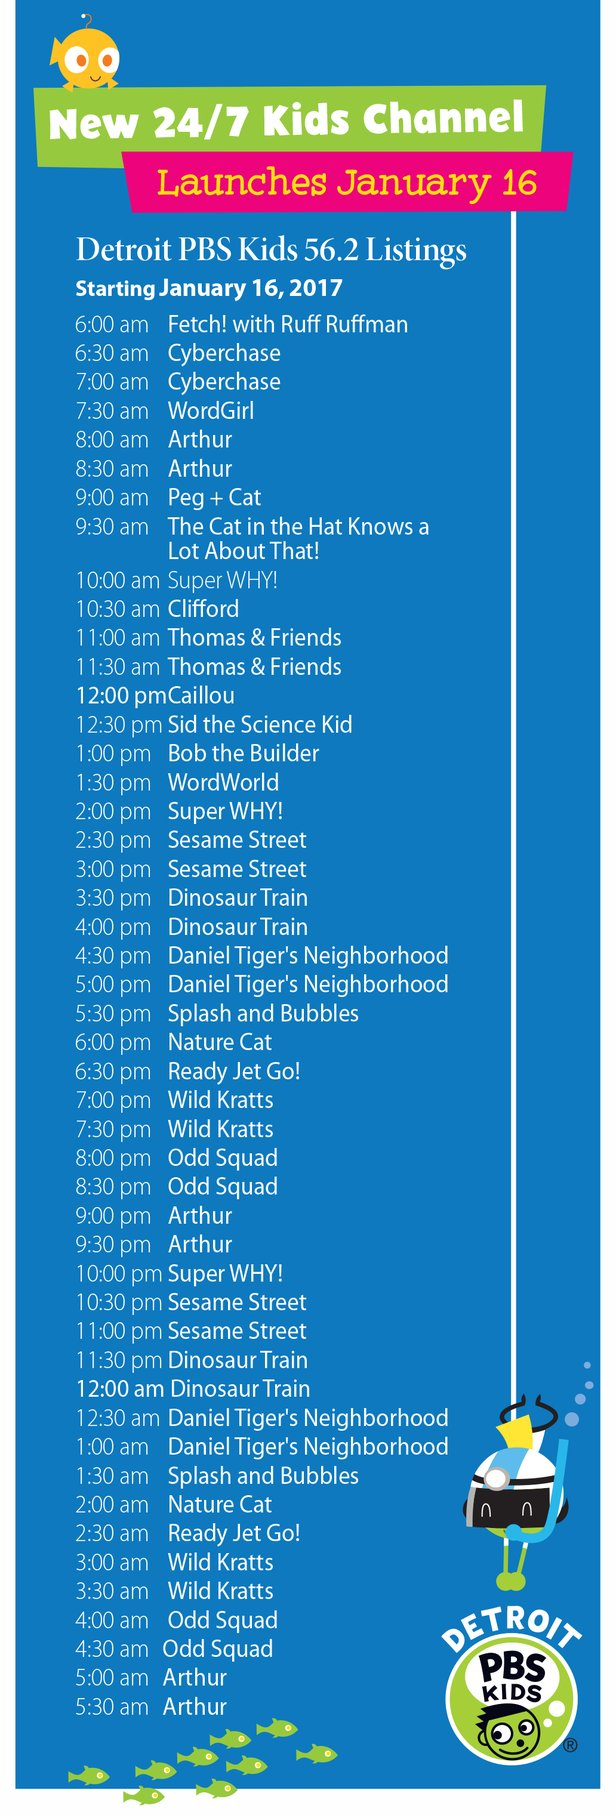 Kids-Channel-24-7-Schedule.png